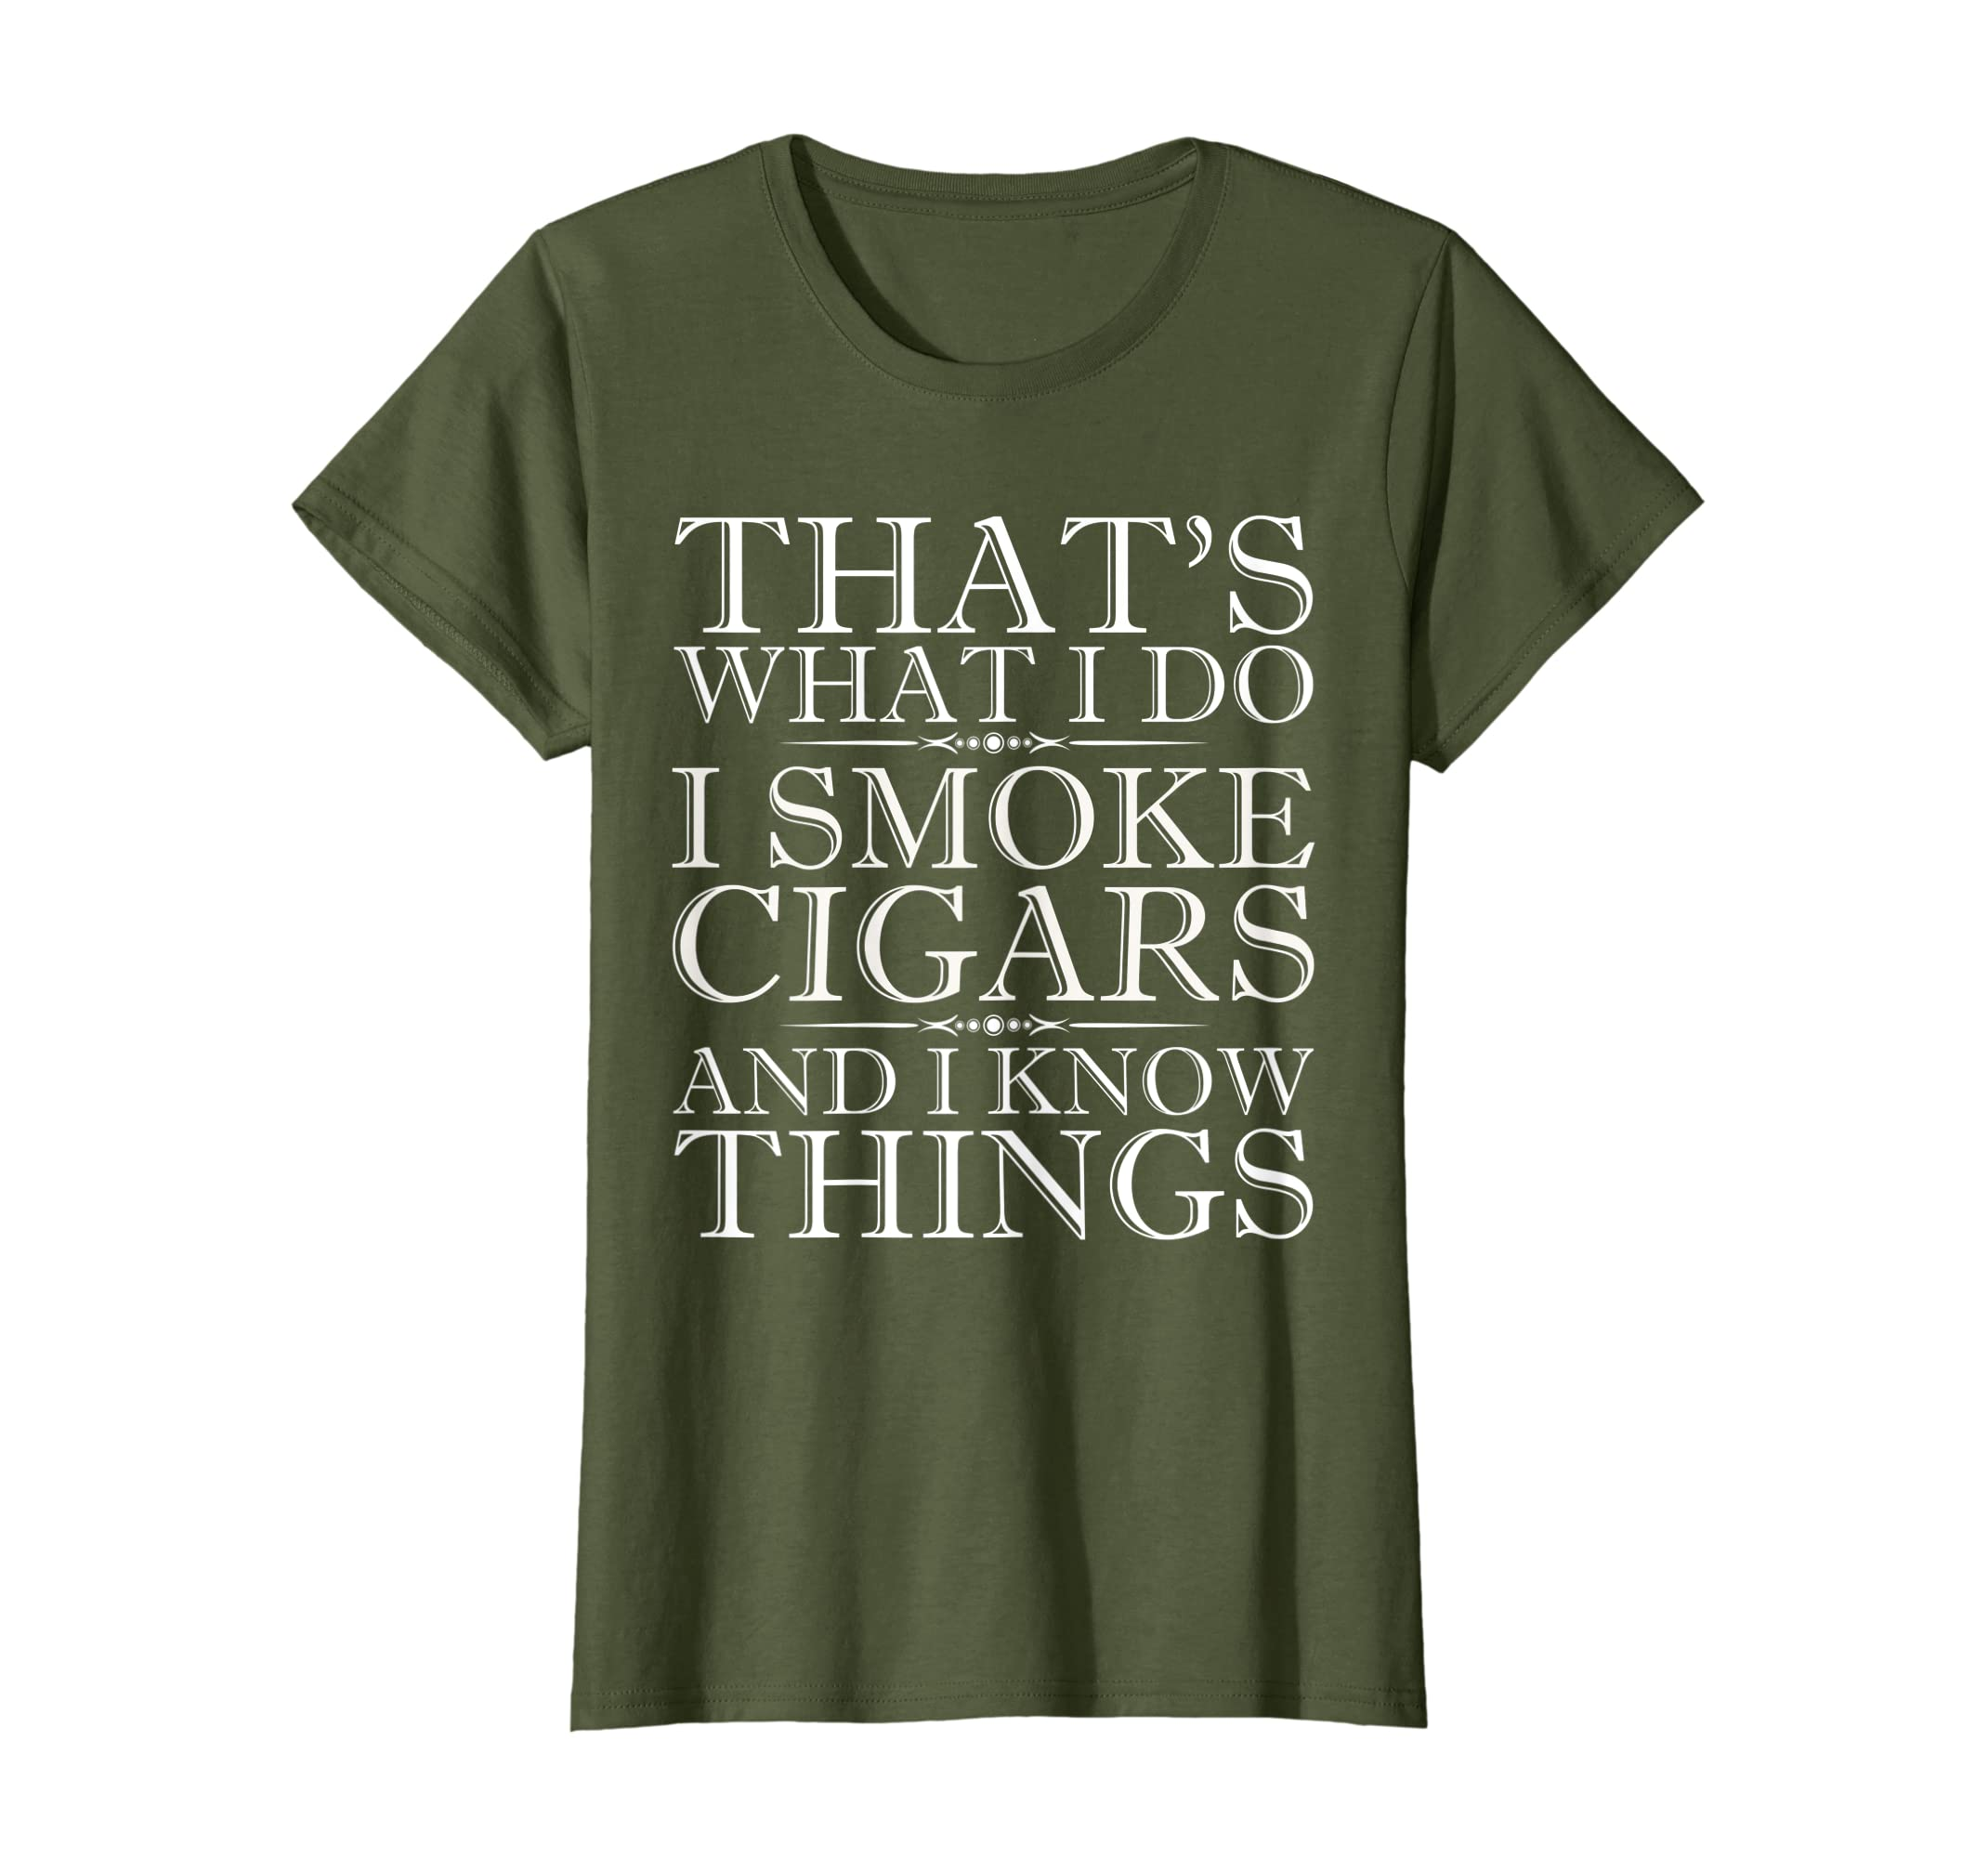 59cfd8ea98 Amazon.com: That's What I Do I Smoke Cigars And I Know Things T-Shirt:  Clothing